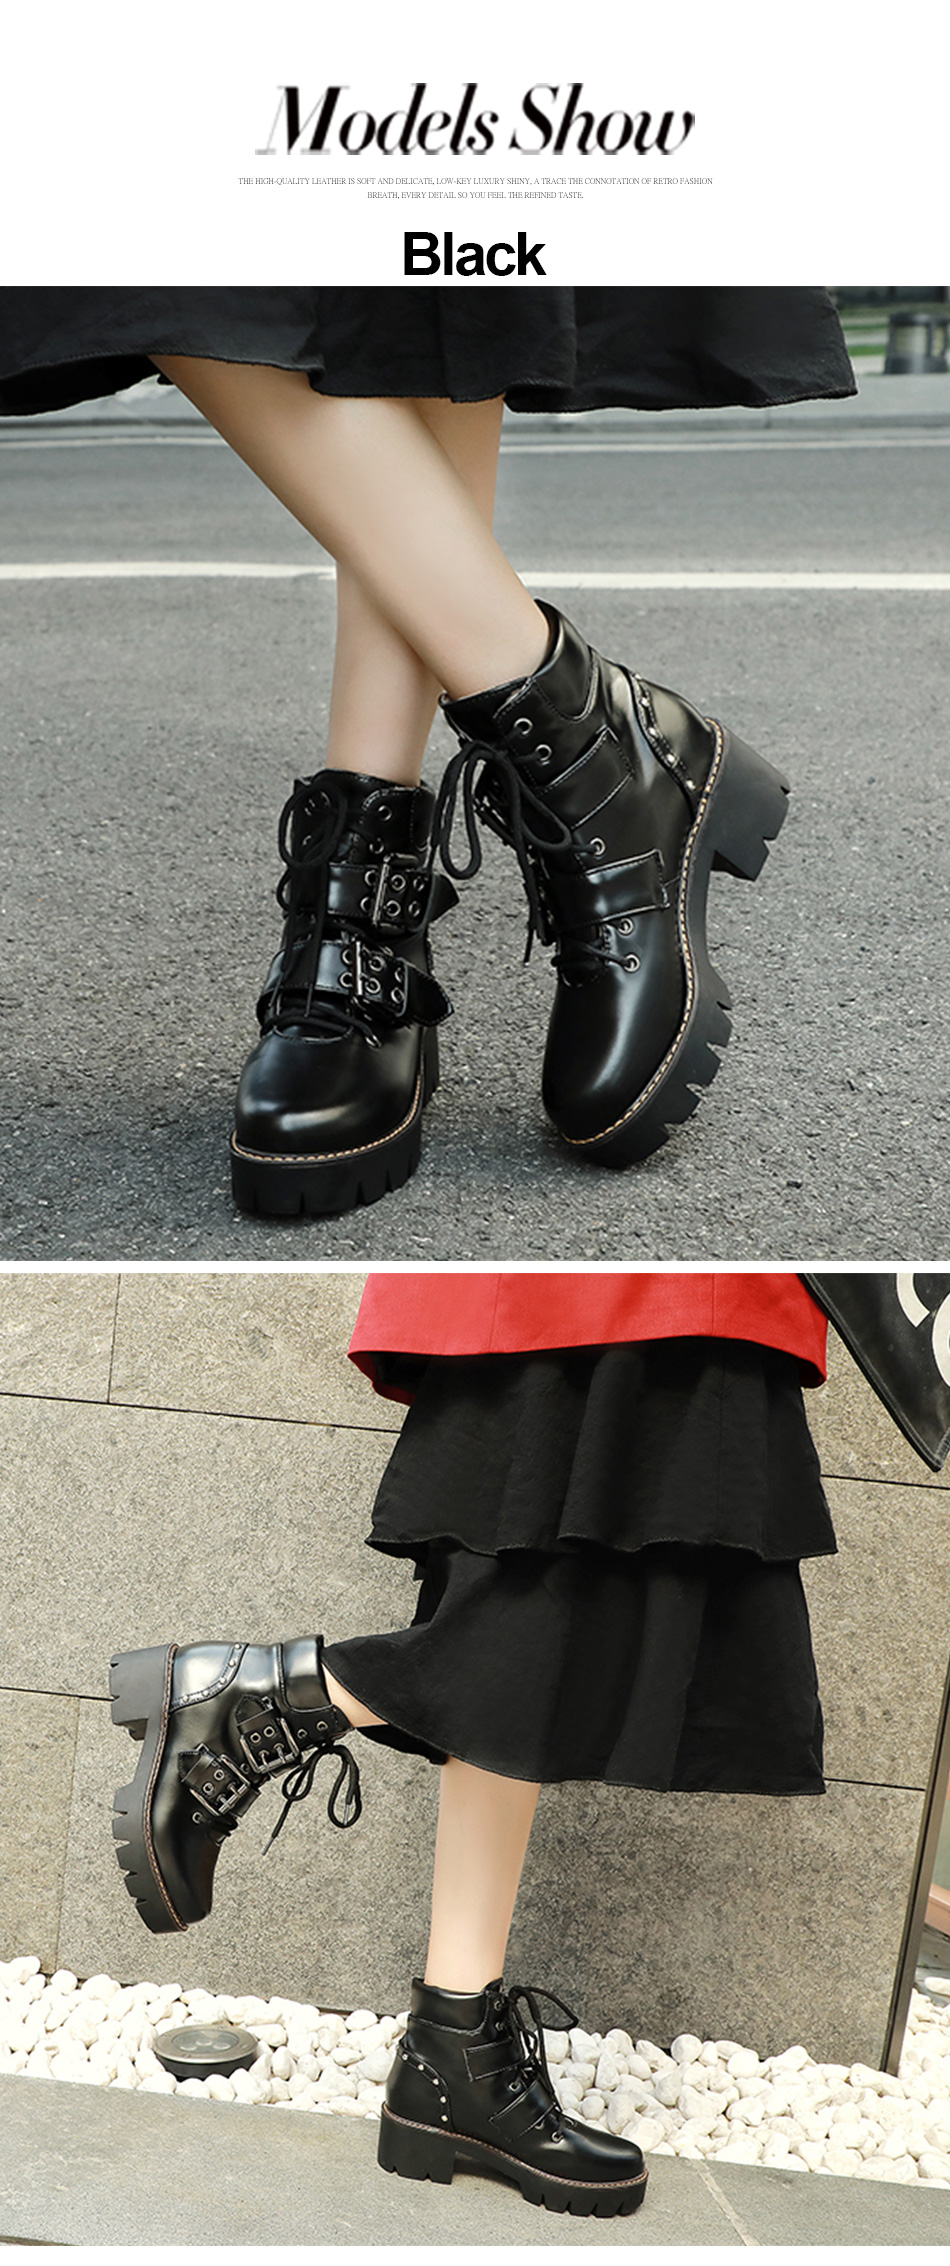 Gdgydh Fashion Buckle Black Gothic Boots Woman Punk Lace-up Chunky Heels Ladies Short Boots Comfortable New Arrival Drop Ship